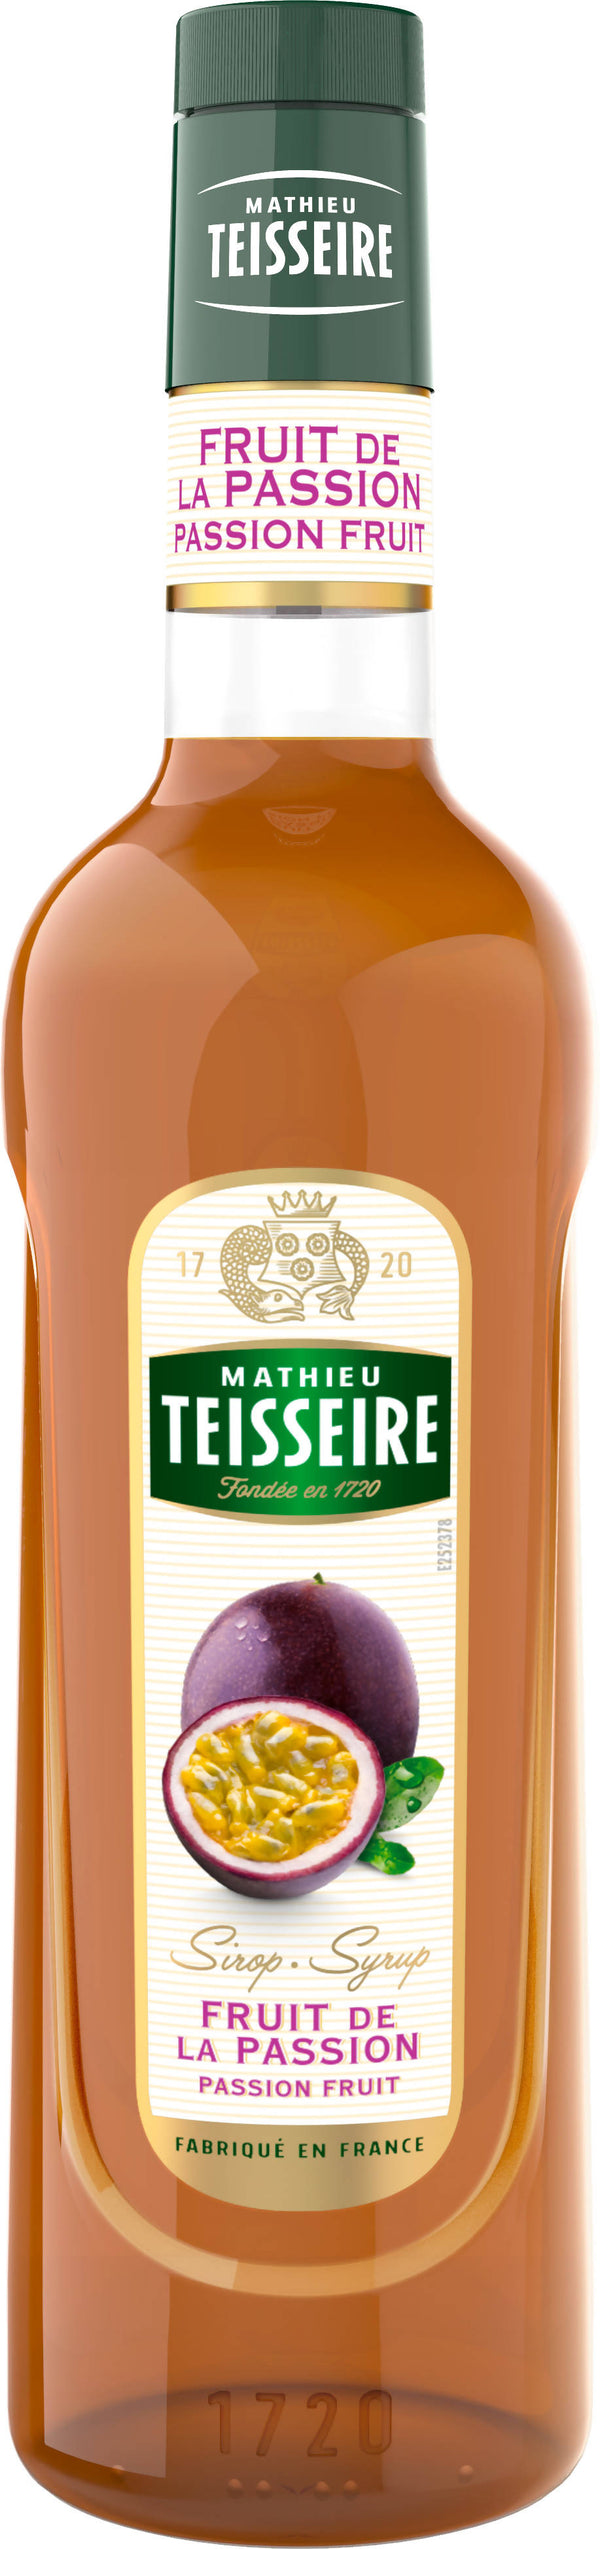 TEISSEIRE PASSION FRUIT (700ML) - BUNAMARKET